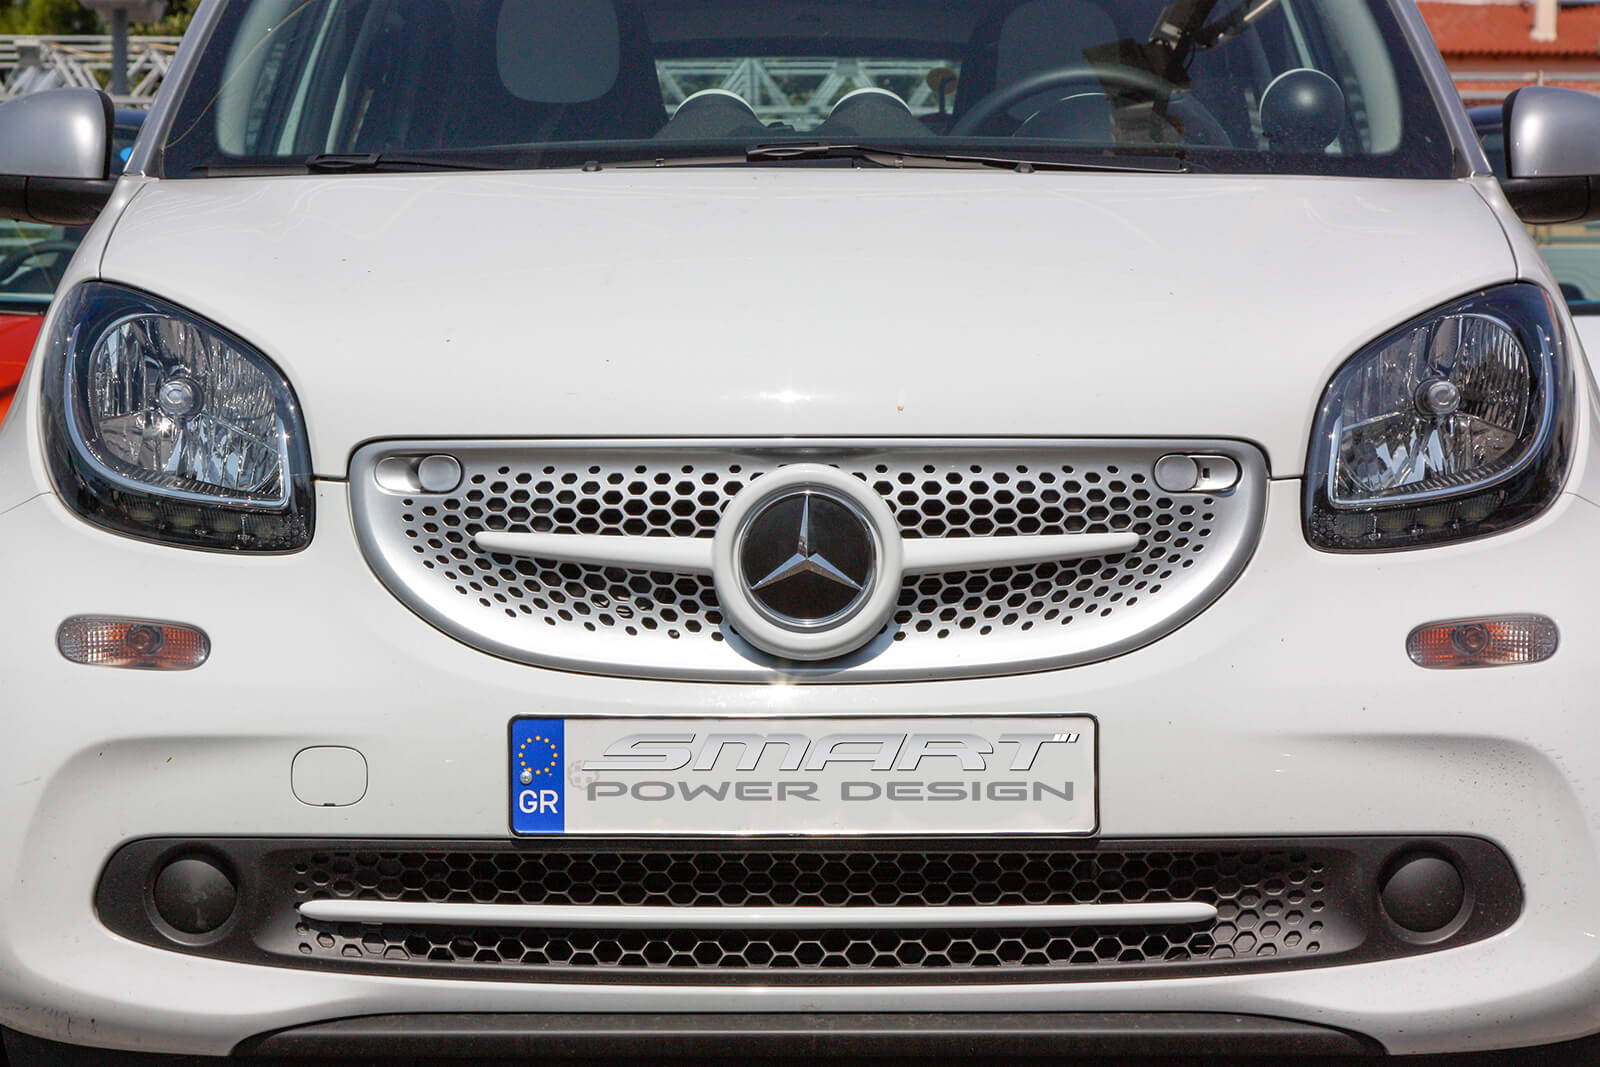 This is a close up photo of a white Front Grille installed on a Smart Fortwo 453.